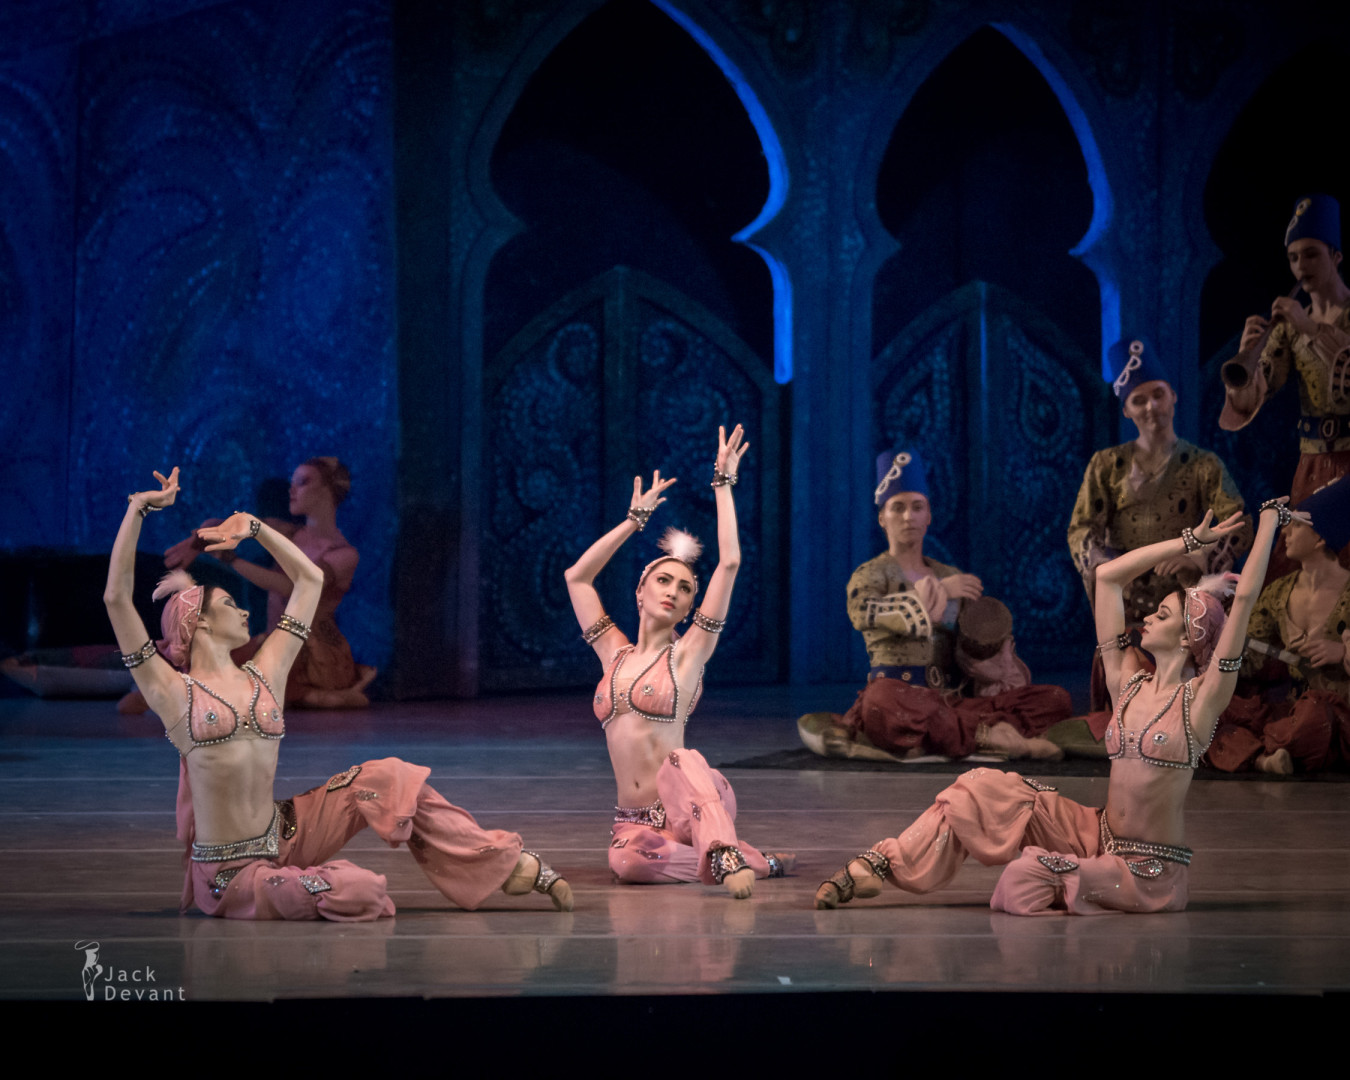 Viktoria Tereshkina and Danila Korsuntsev in Scheherazade